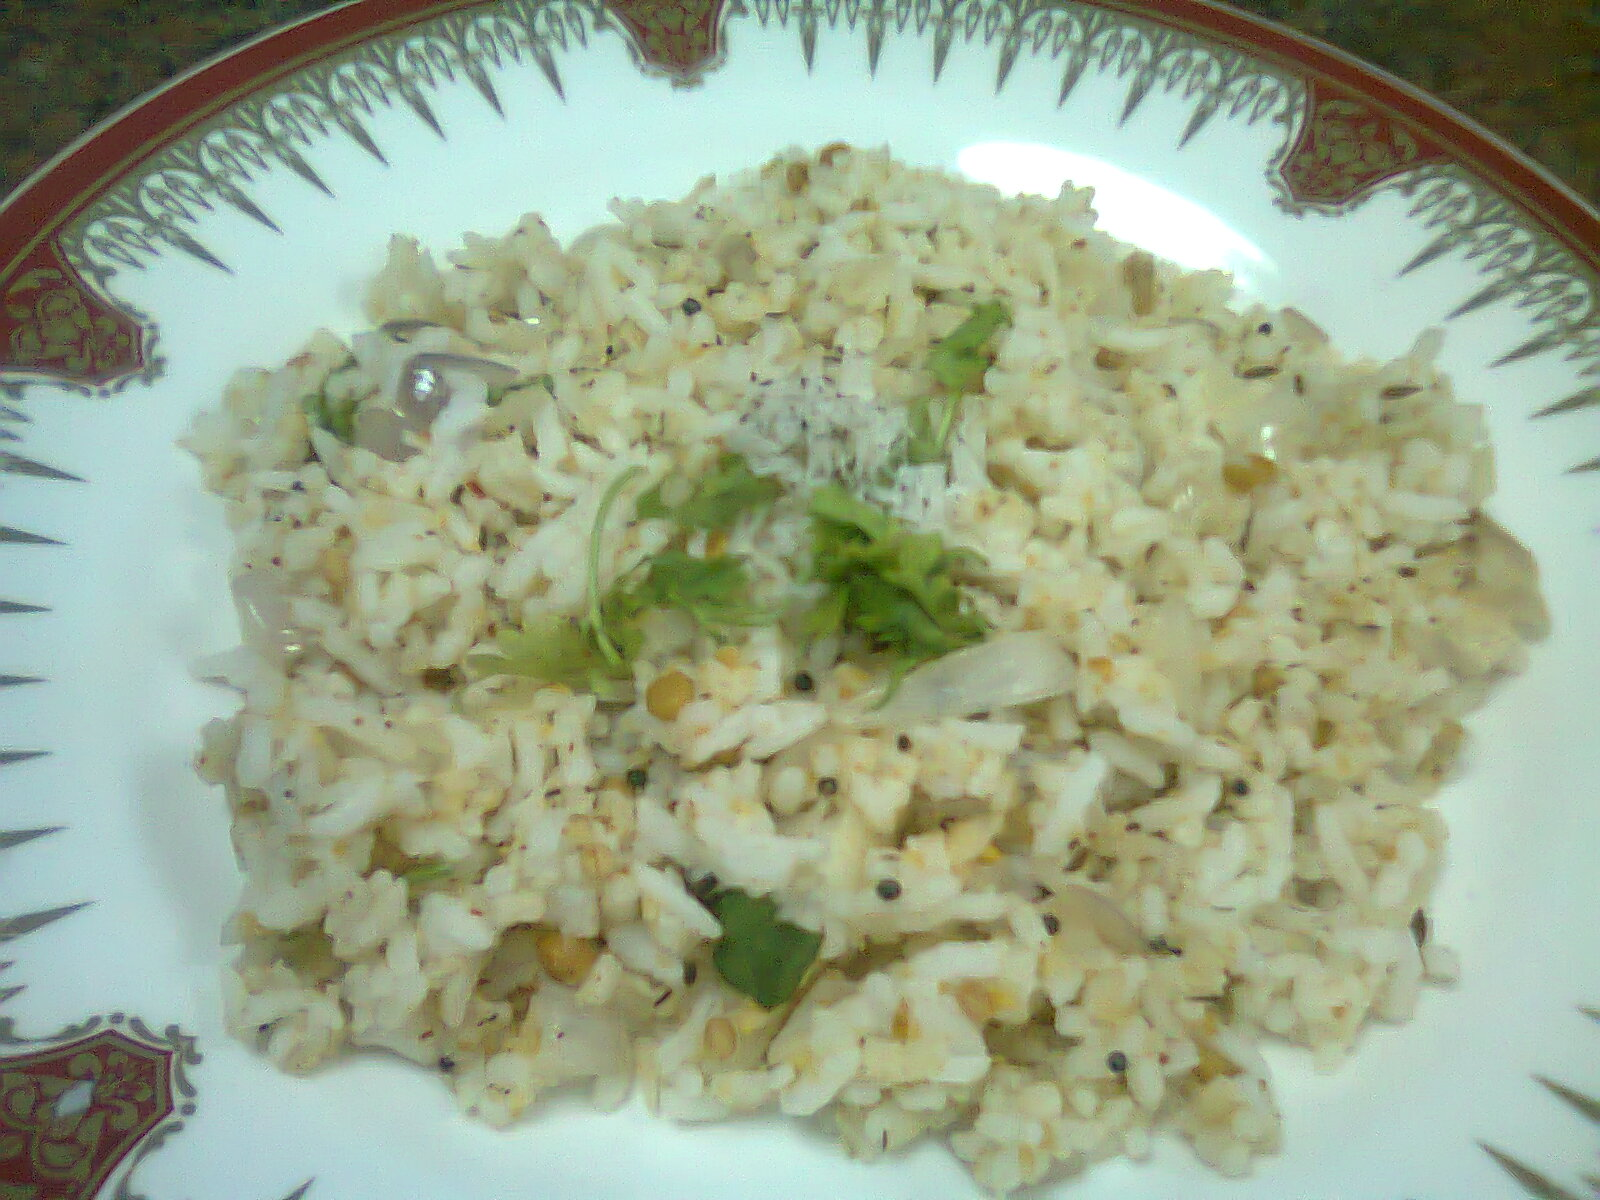 Nandini's Cook Book: Powdered Dhal Rice